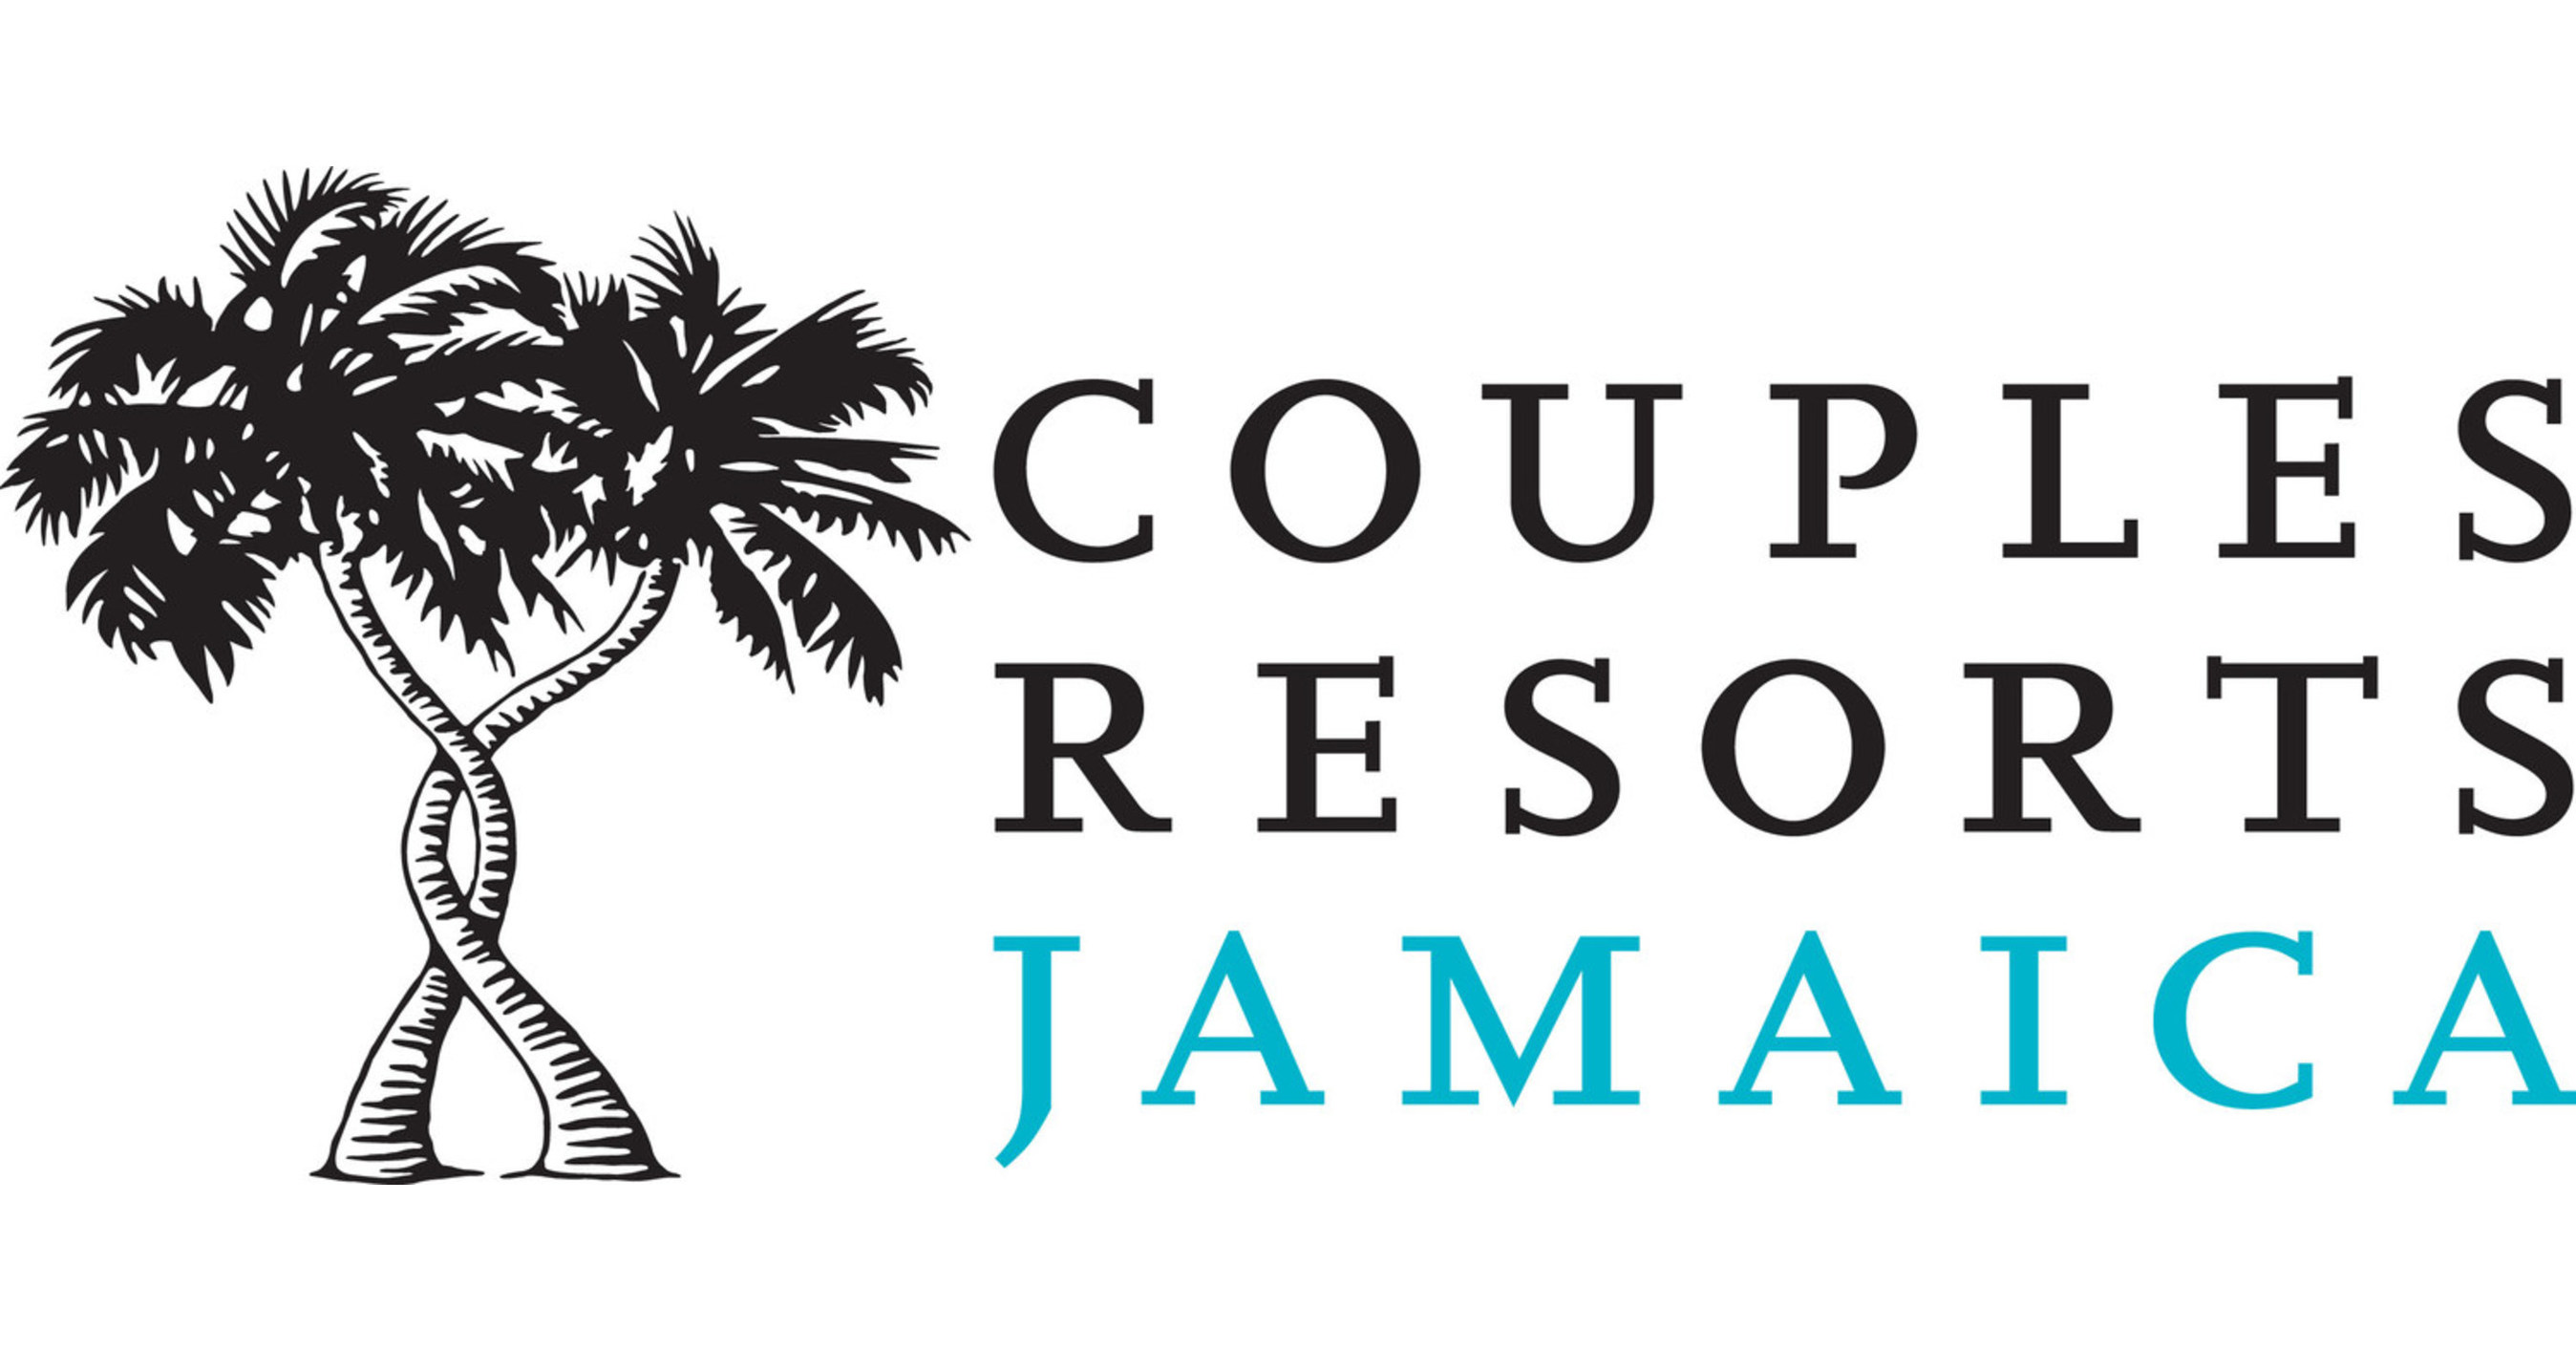 Couples Resorts Jamaica Offers New CBD Oil Massage